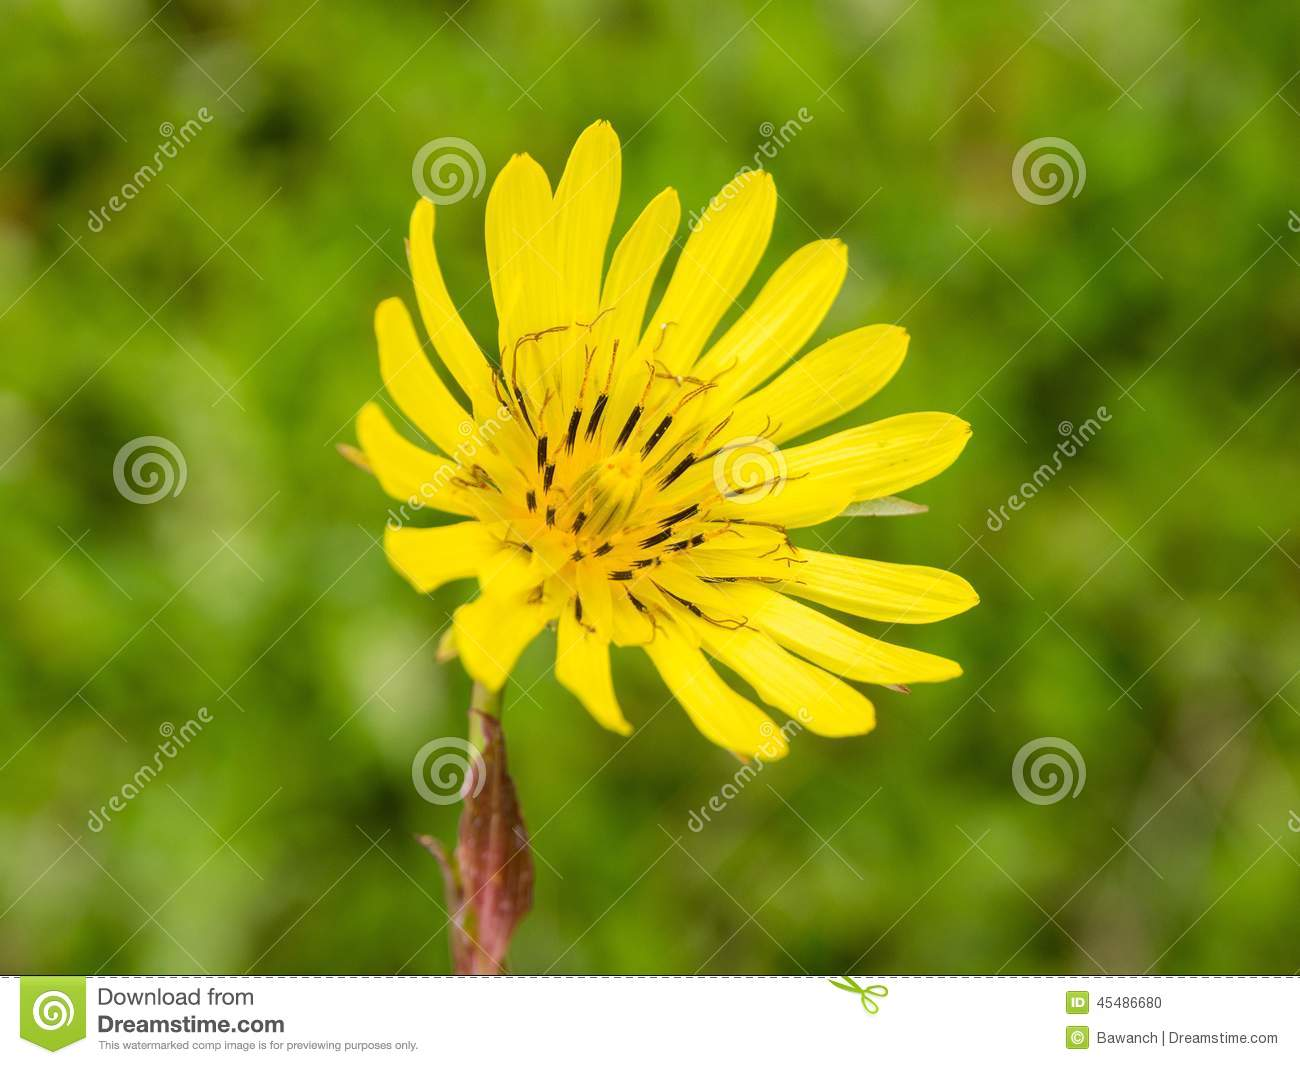 Yellow meadow flower stock photo image of light endless 45486680 download yellow meadow flower stock photo image of light endless 45486680 mightylinksfo